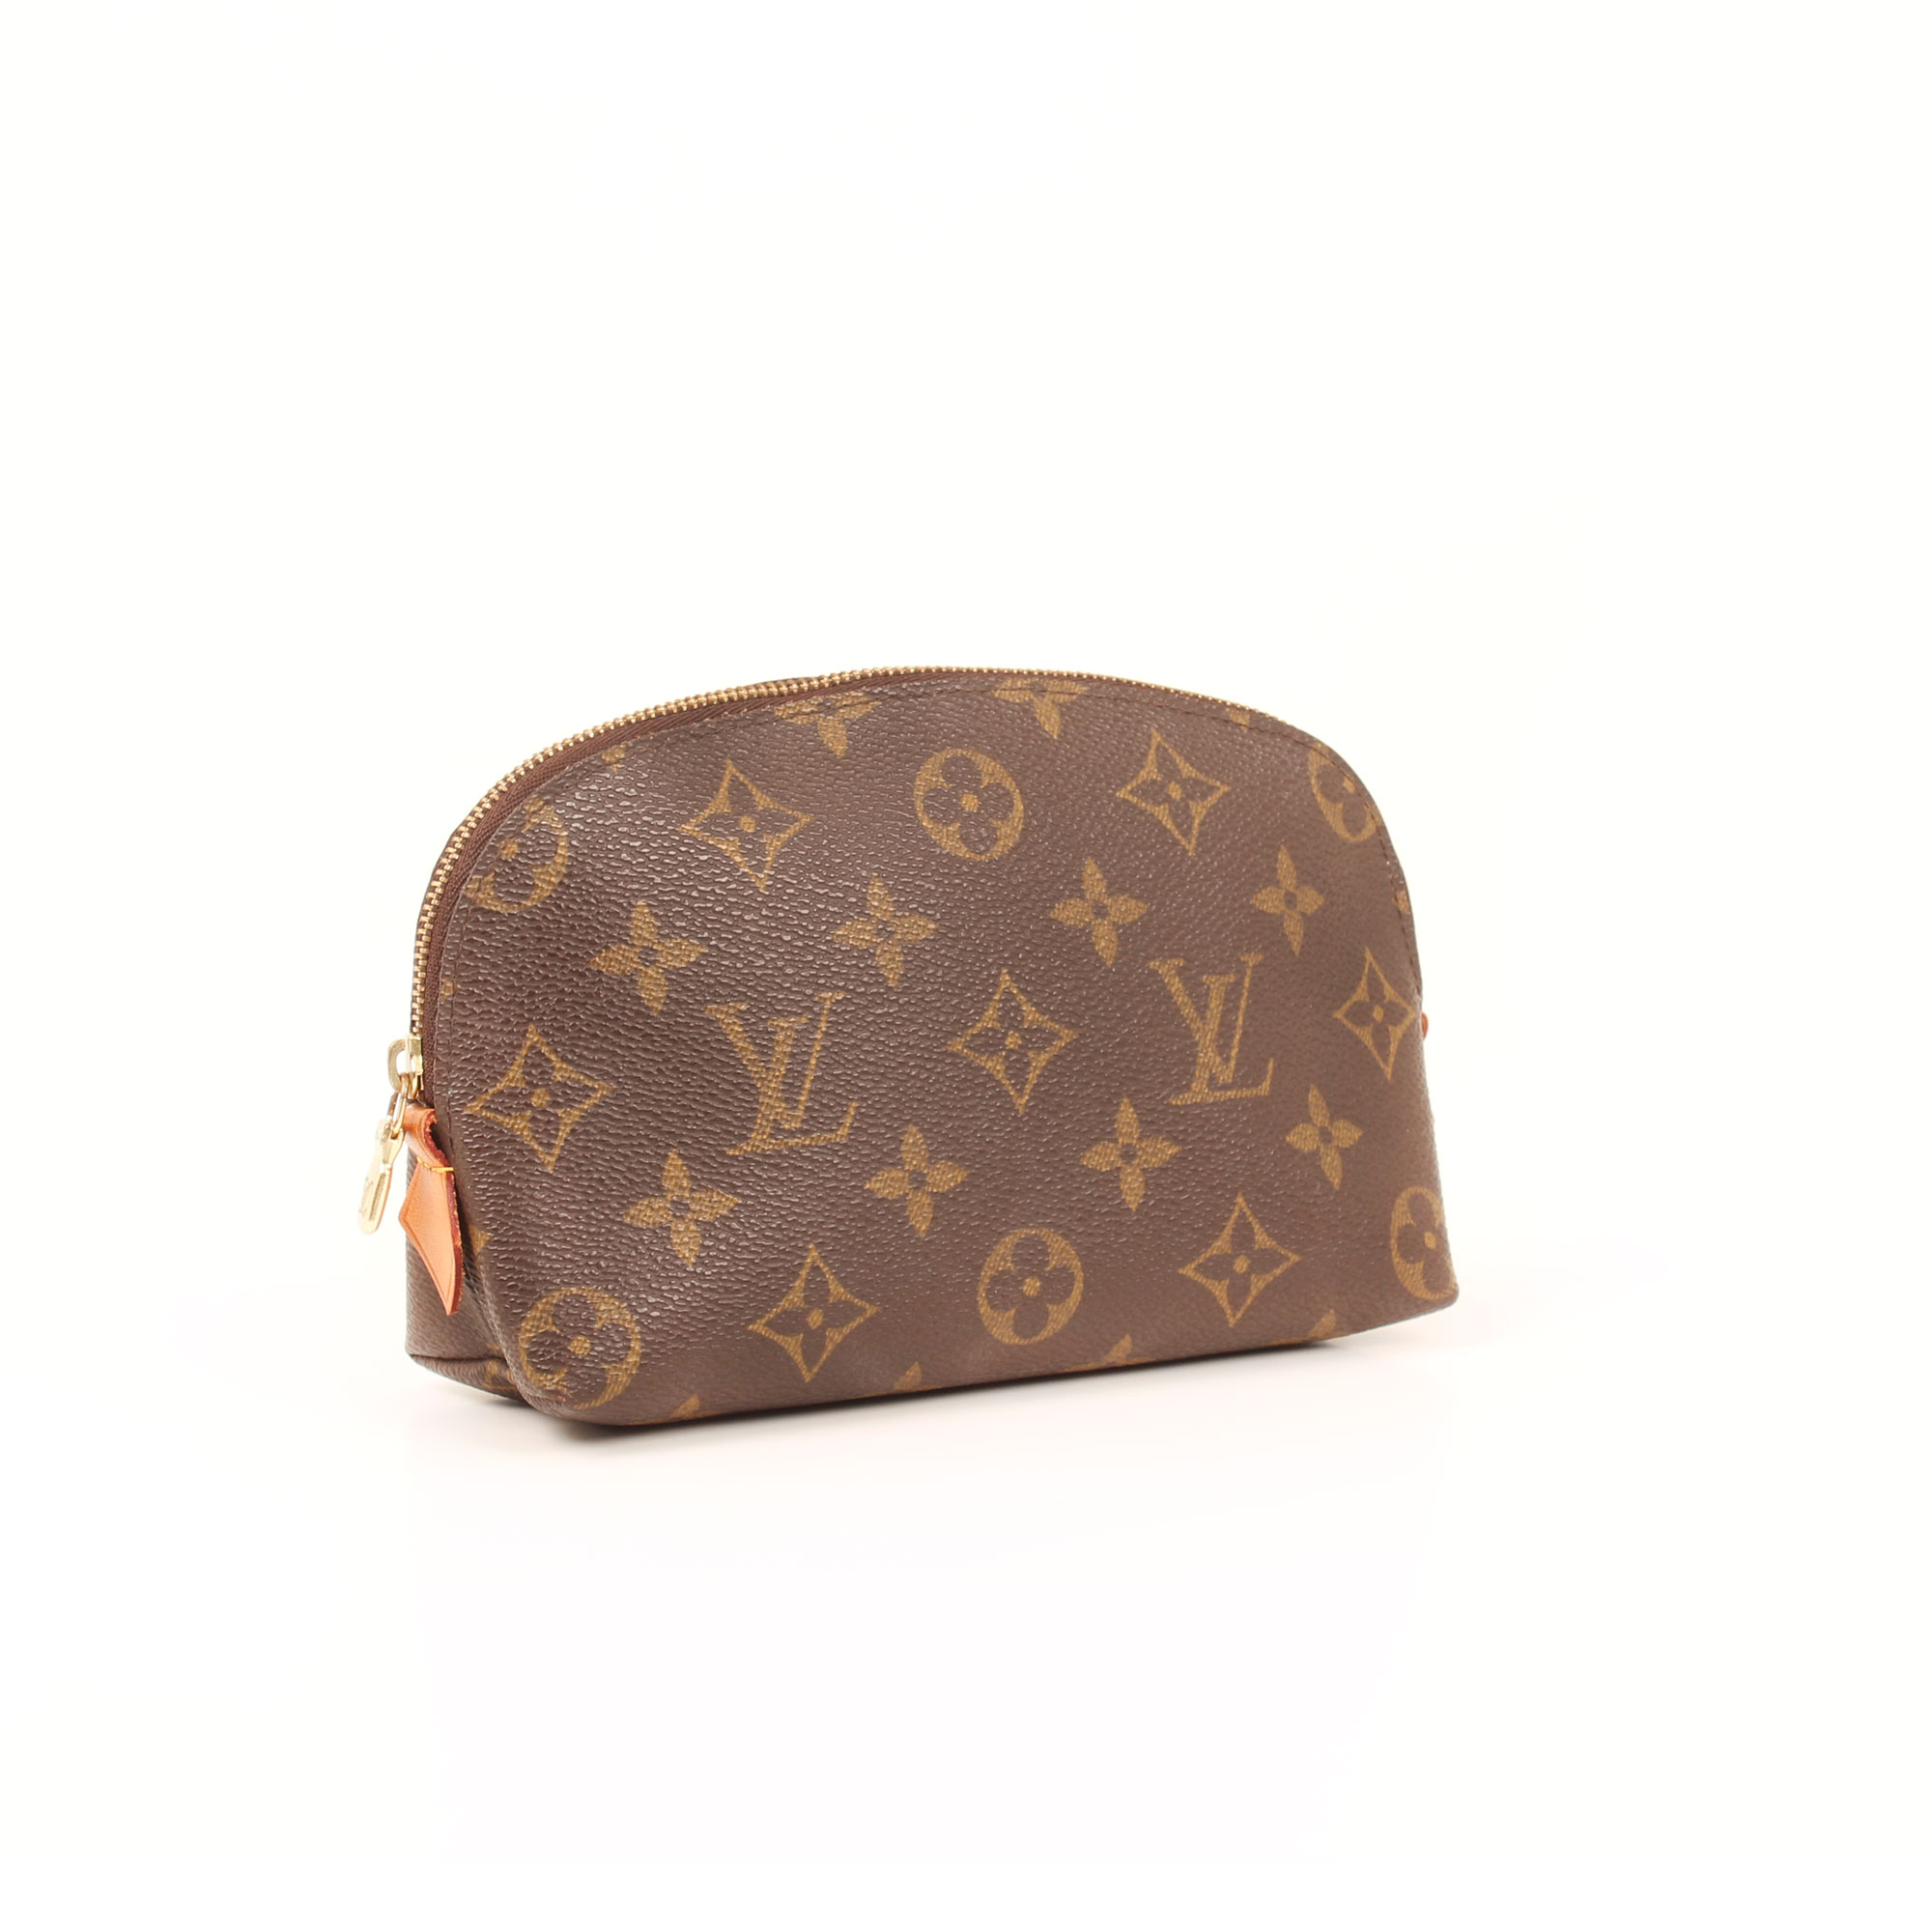 Imagen general del louis vuitton neceser cosmeticos monogram